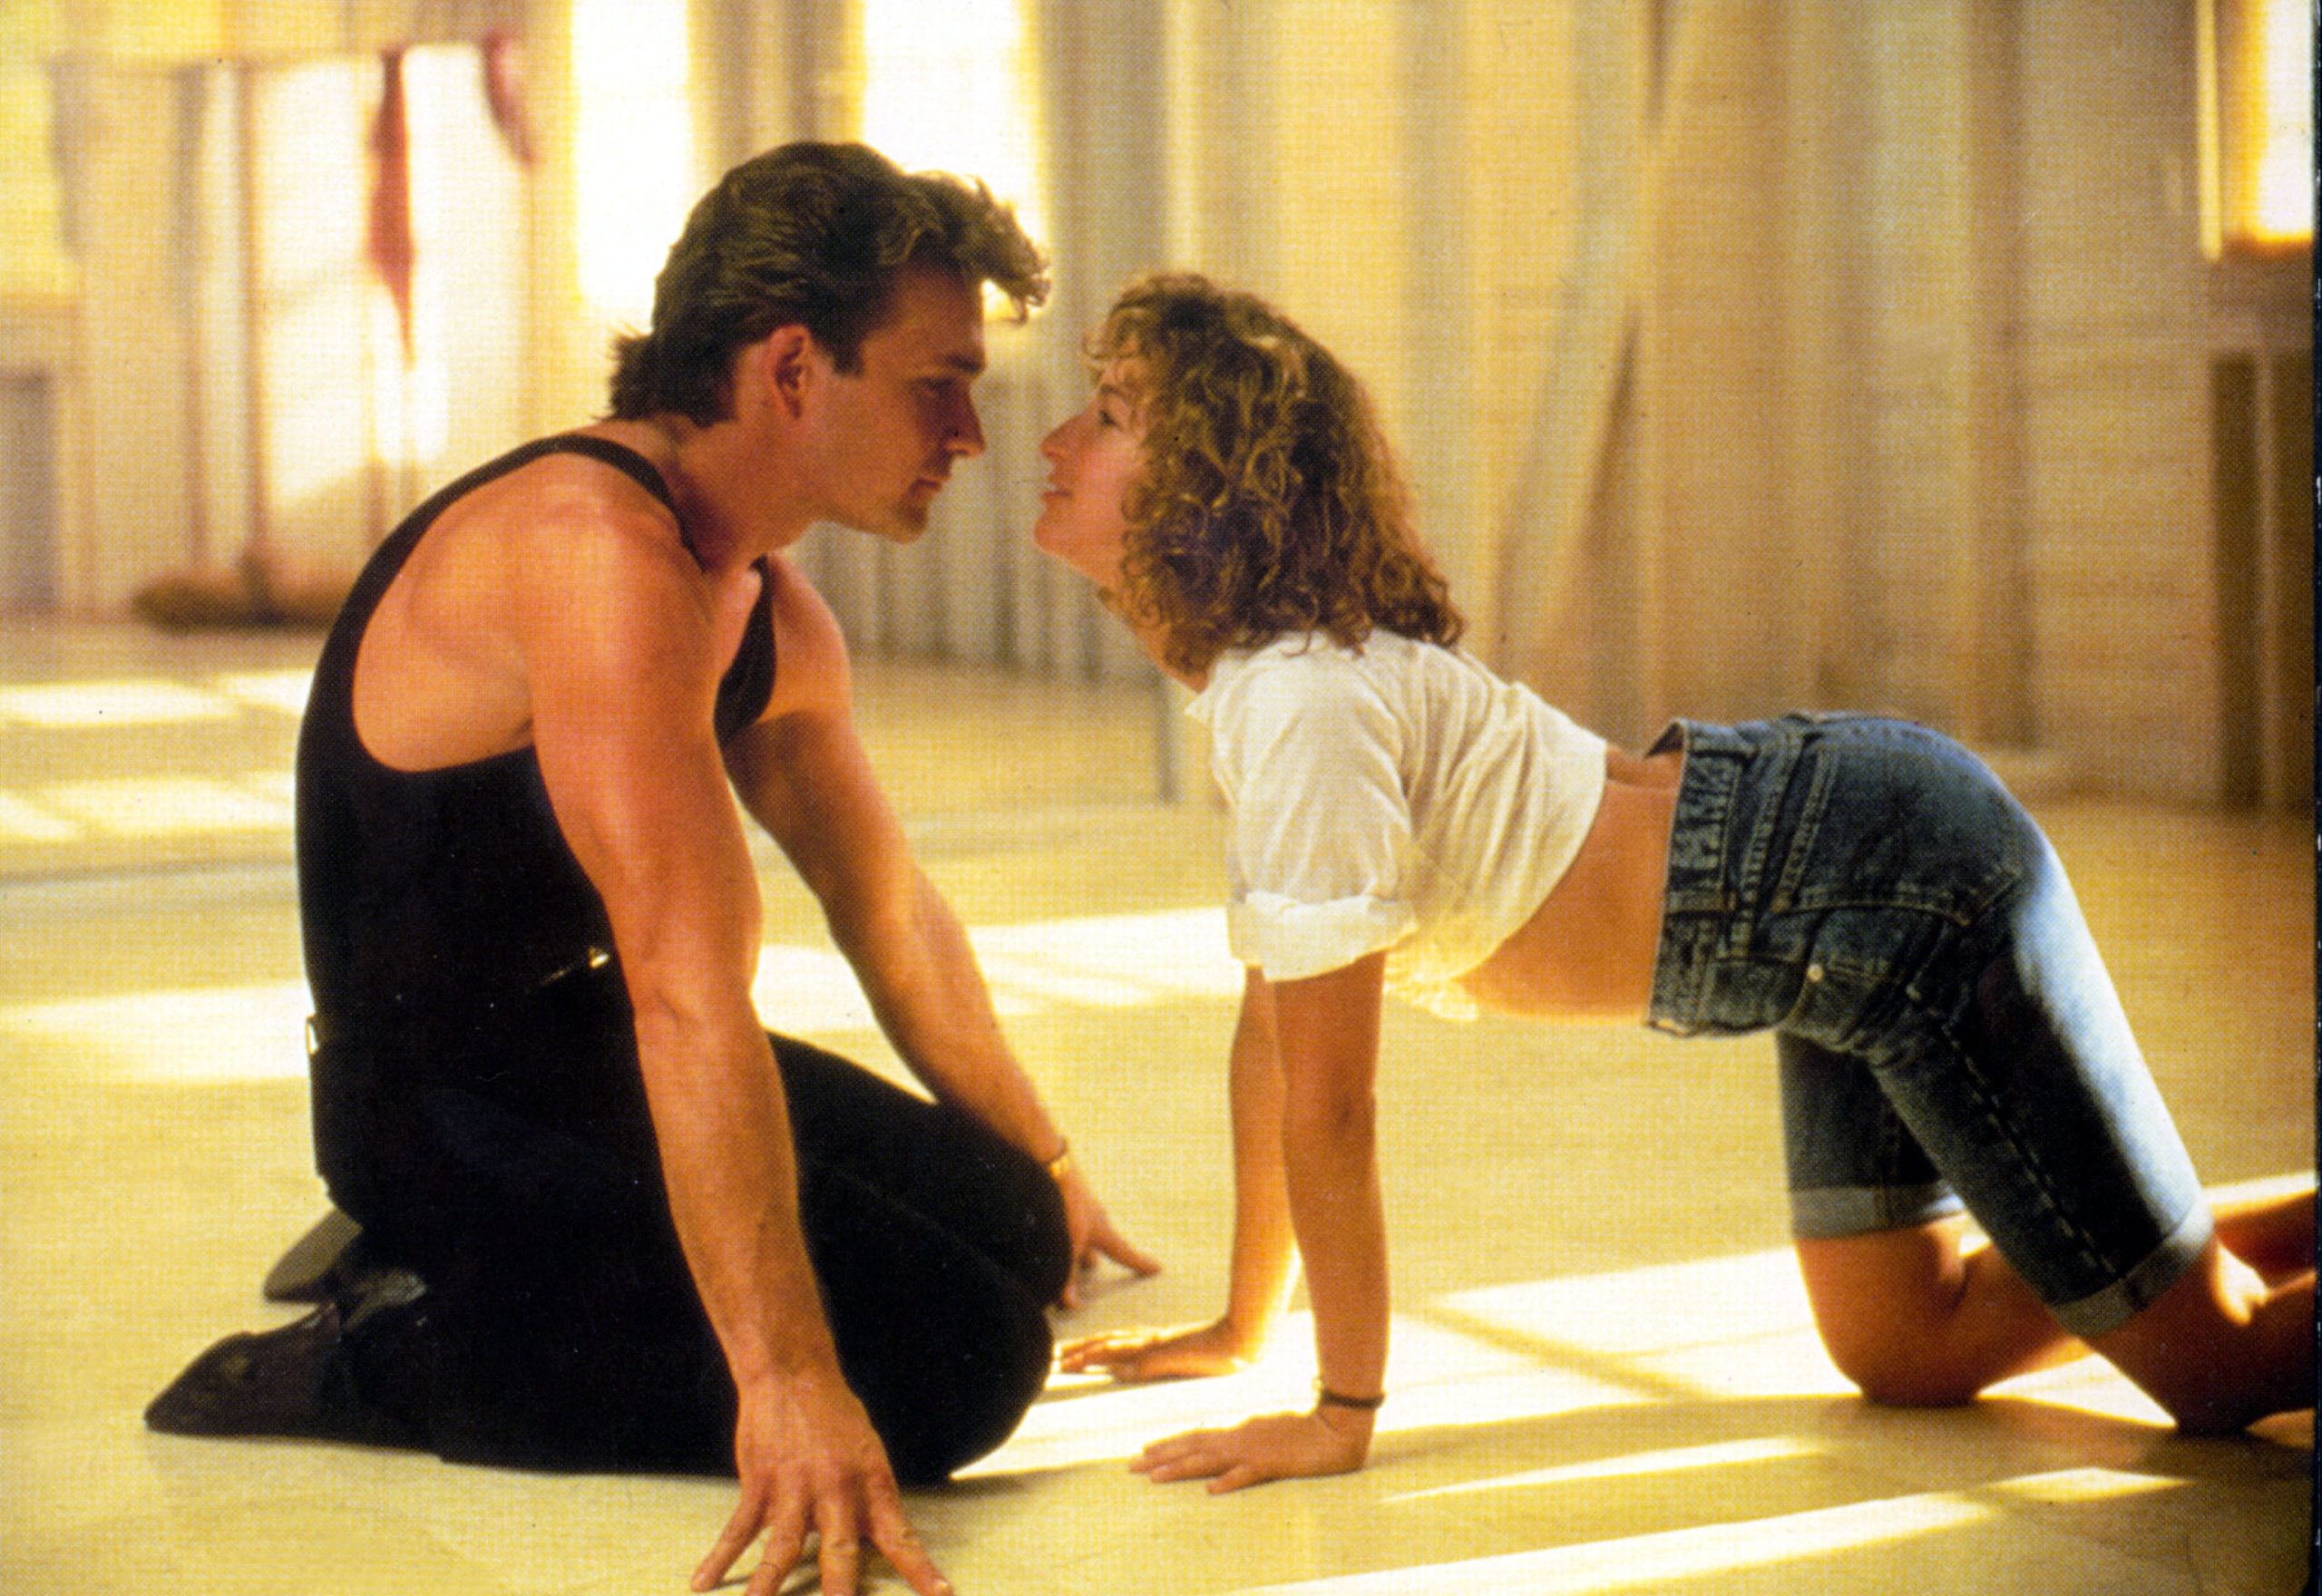 Patrick Swayze and Jennifer Grey's chemistry on-screen belied an often tempestuous relationship off-screen.